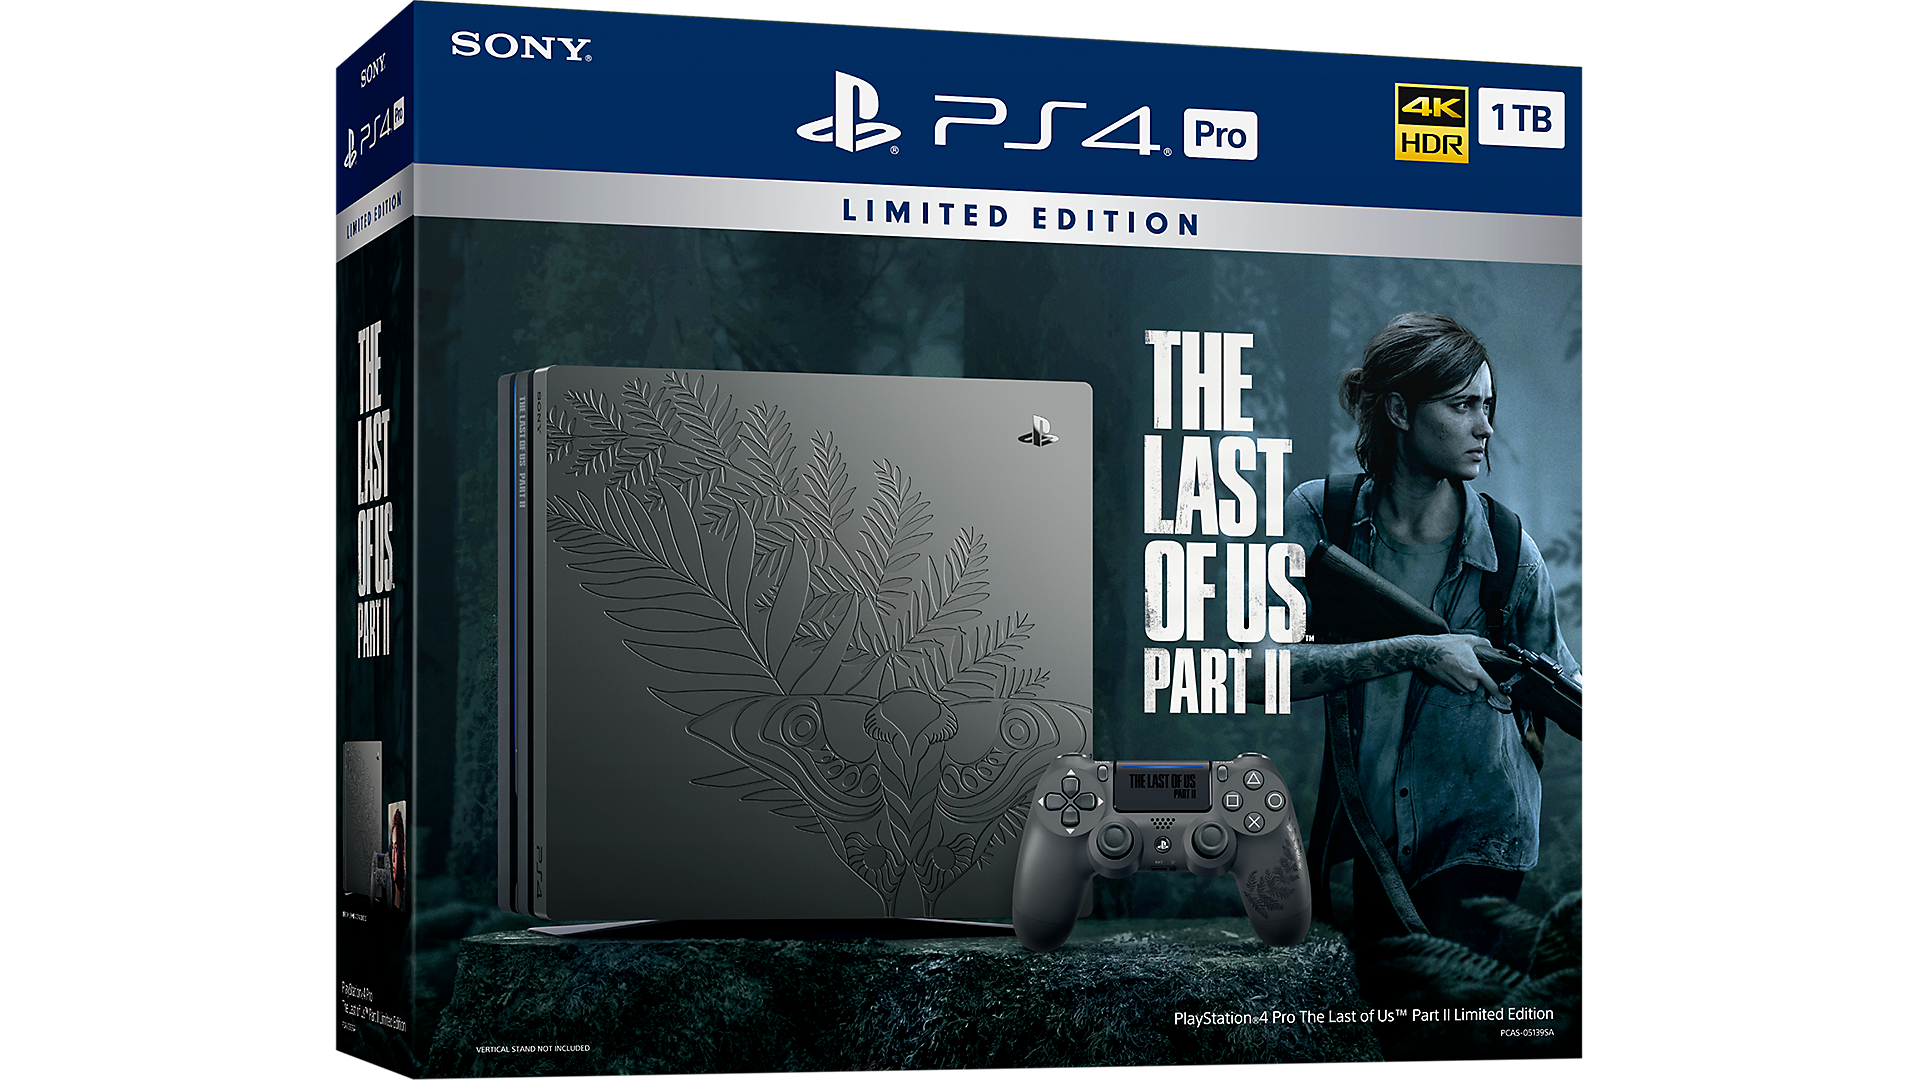 PlayStation 4 Pro The Last of Us™ Part II Limited Edition